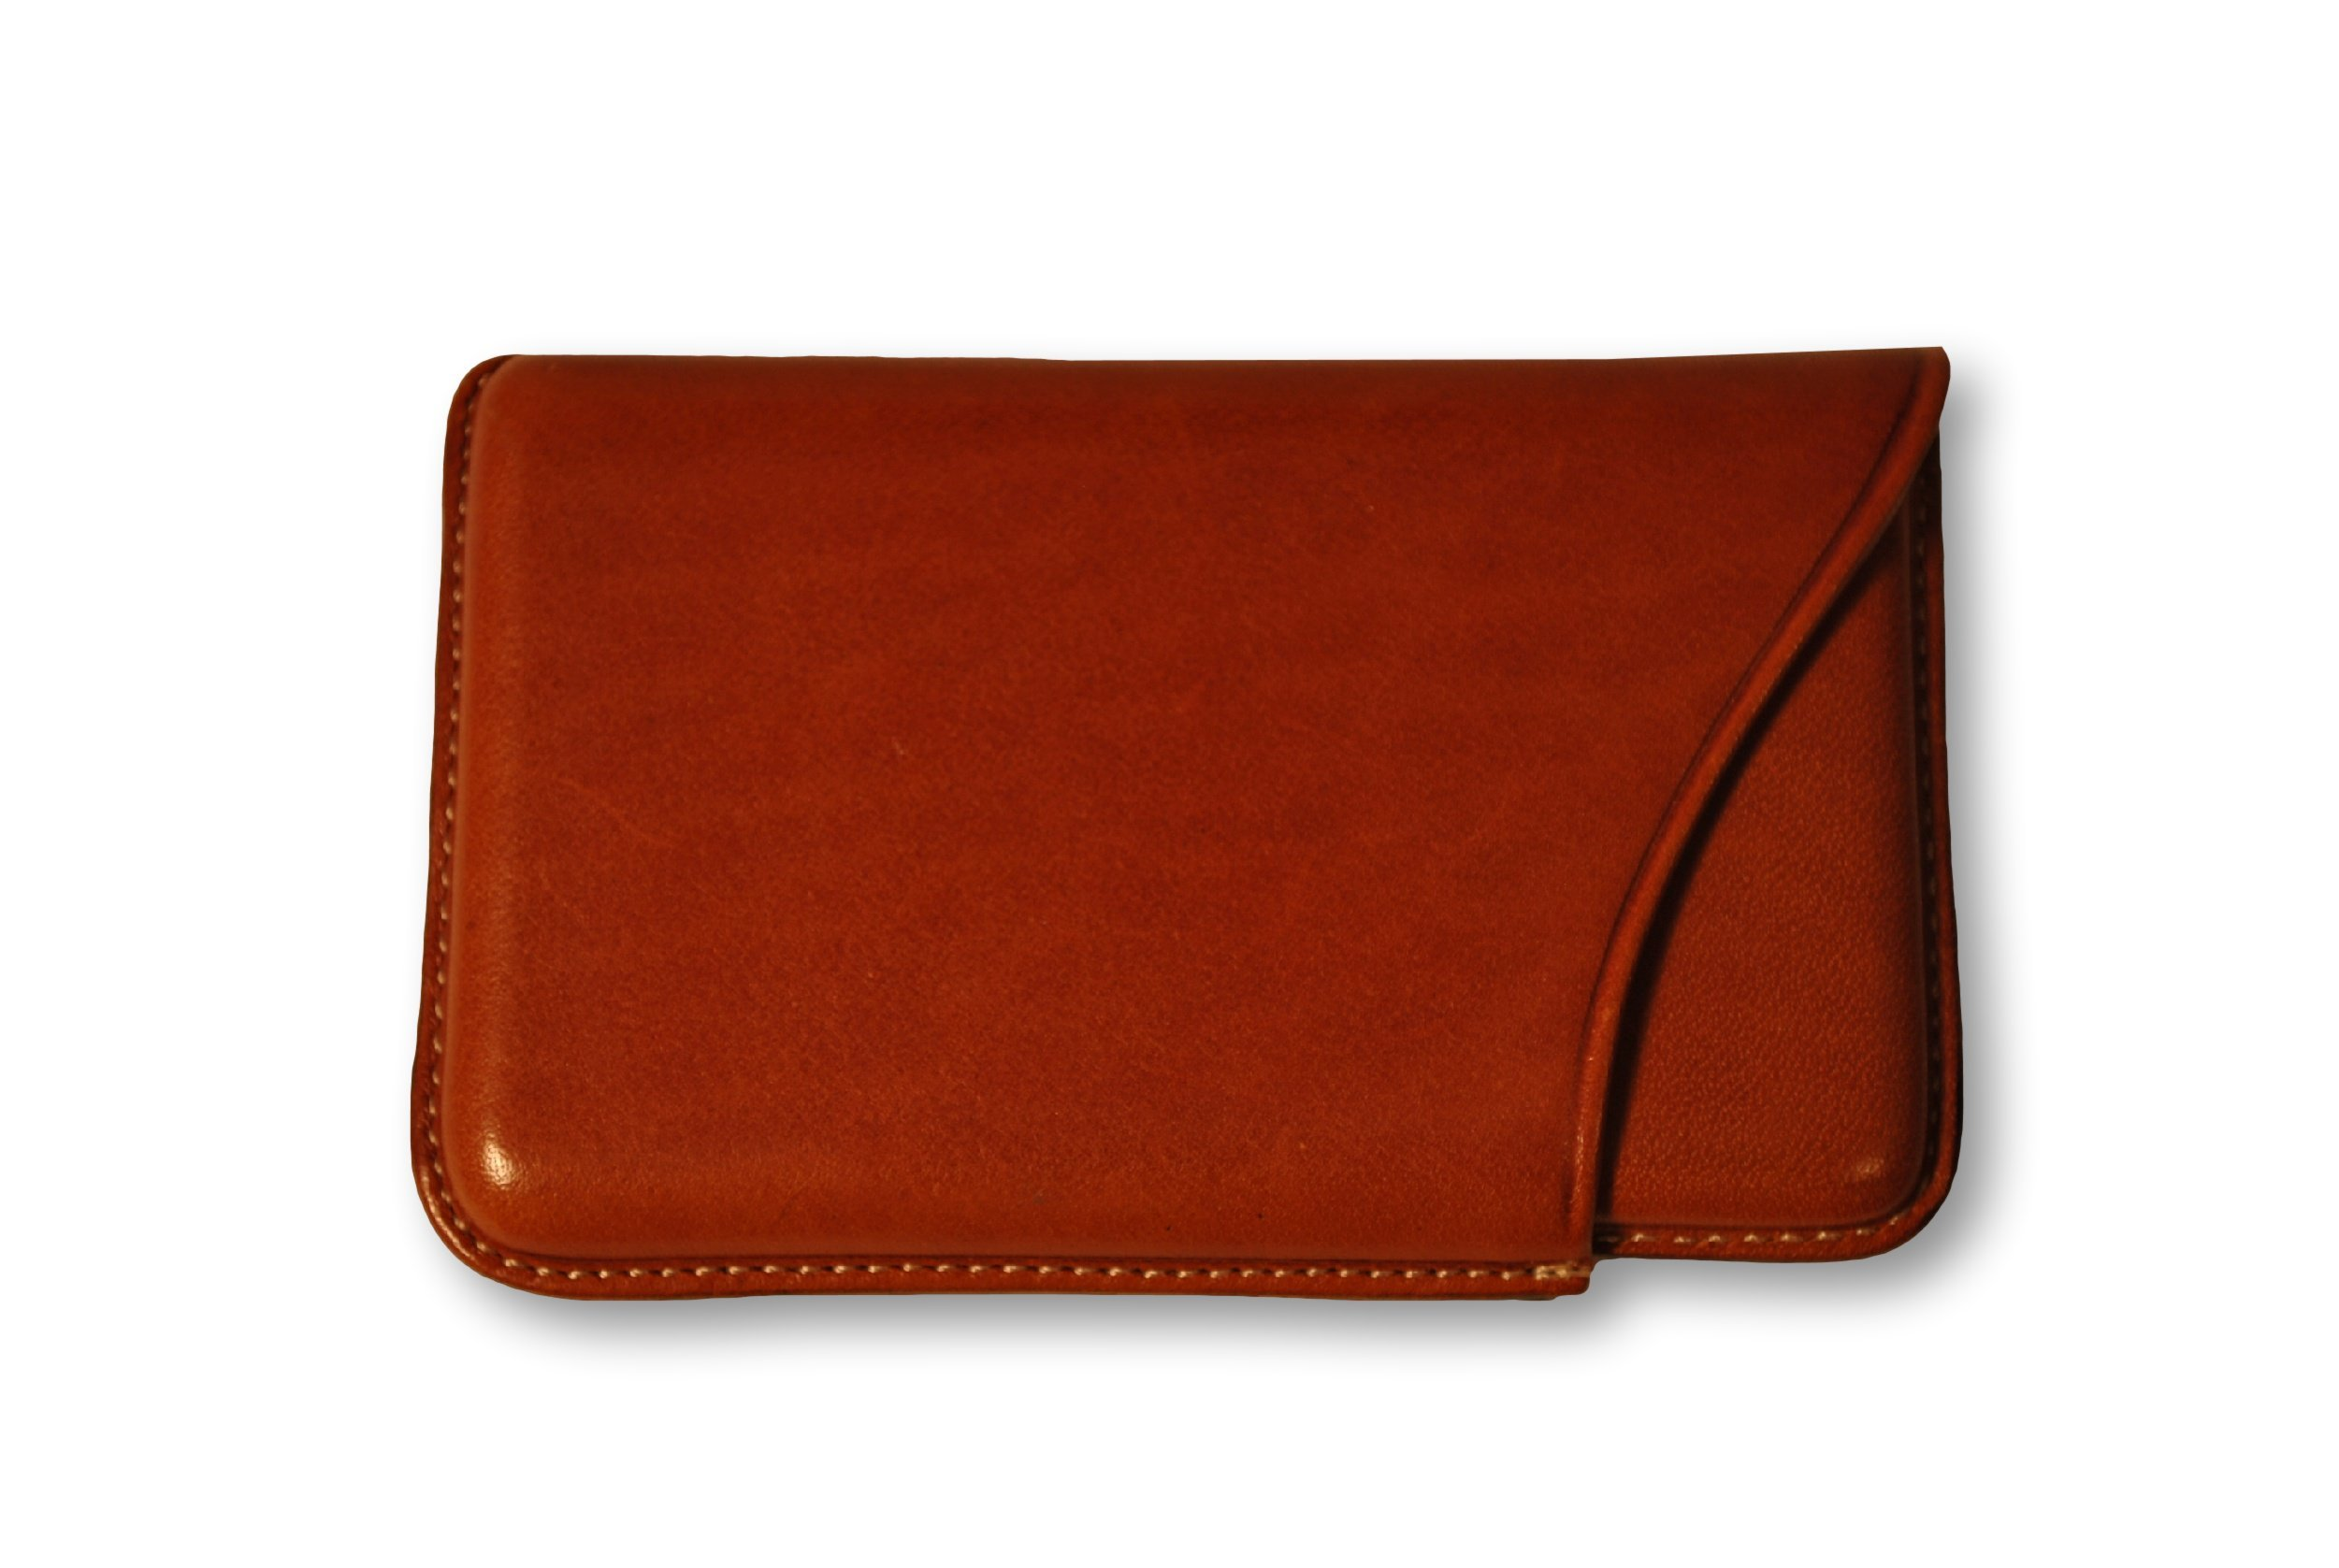 Budd Leather Company Slide Out Business Card Case, Tan (603100-3)